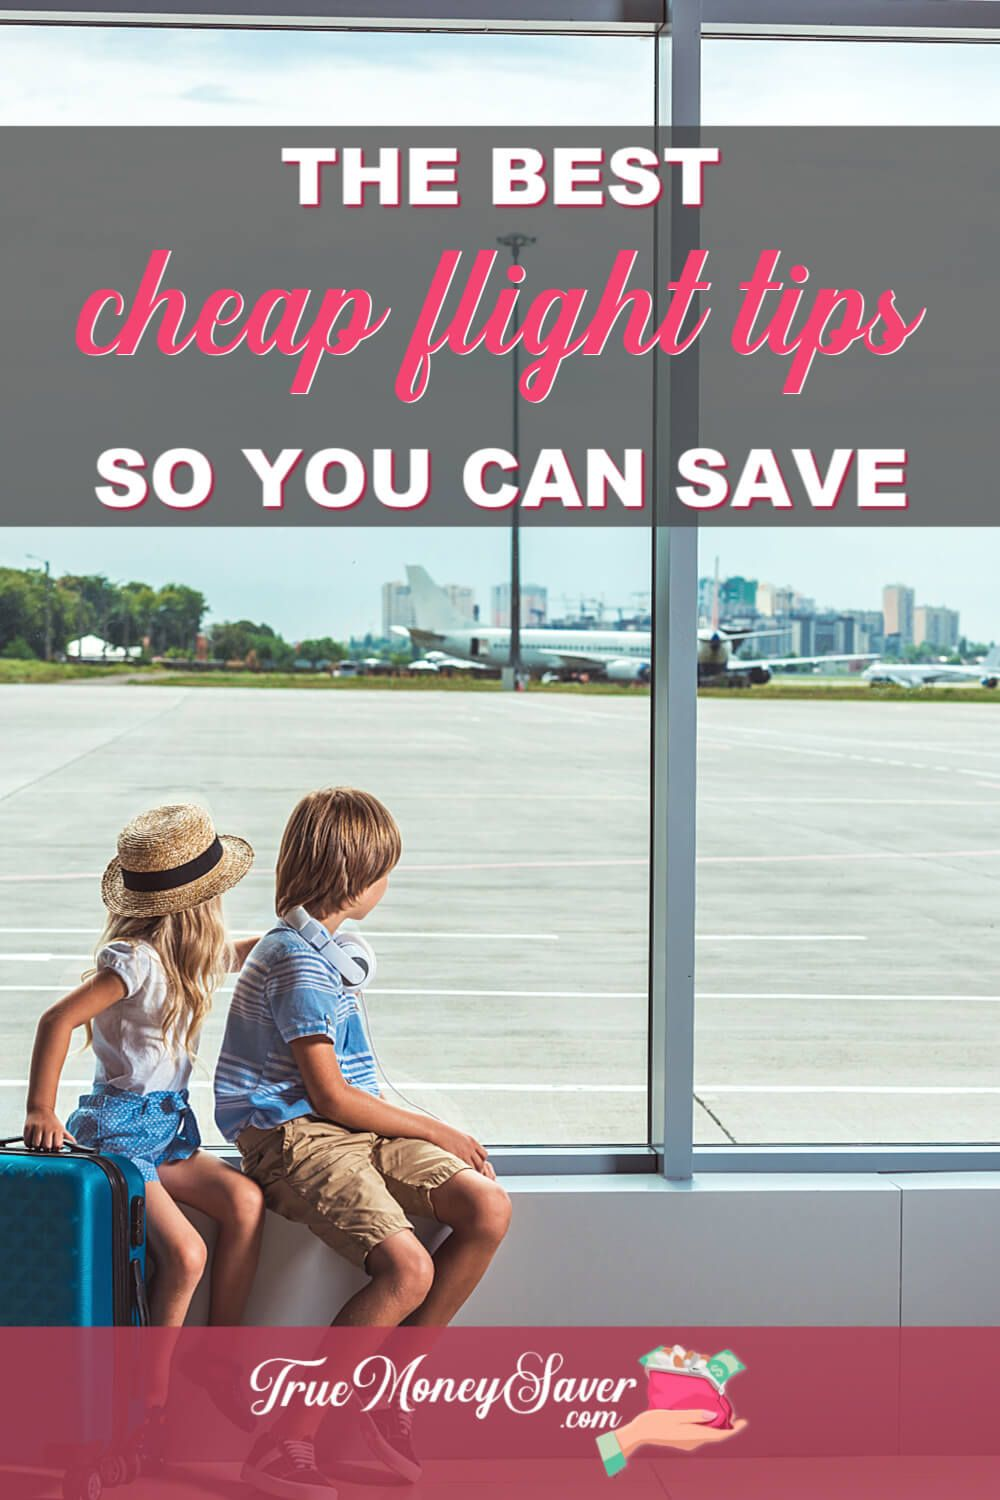 If you need to know how to book a cheap flight, then I've got the best cheap flight tips for you! Check out how to get cheap airline tickets today! #truemoneysaver #cheapflighttips #cheapflights #cheapflight #cheapflightickets #cheapflightdeals #cheapflightticket #cheapflightbooking #cheapflightday #cheapflightalert #cheapflightonline #cheapflightdeals #cheapflightbookings #cheapflightalerts #cheapflightfares #lovecheapflights #cheapflighthunter